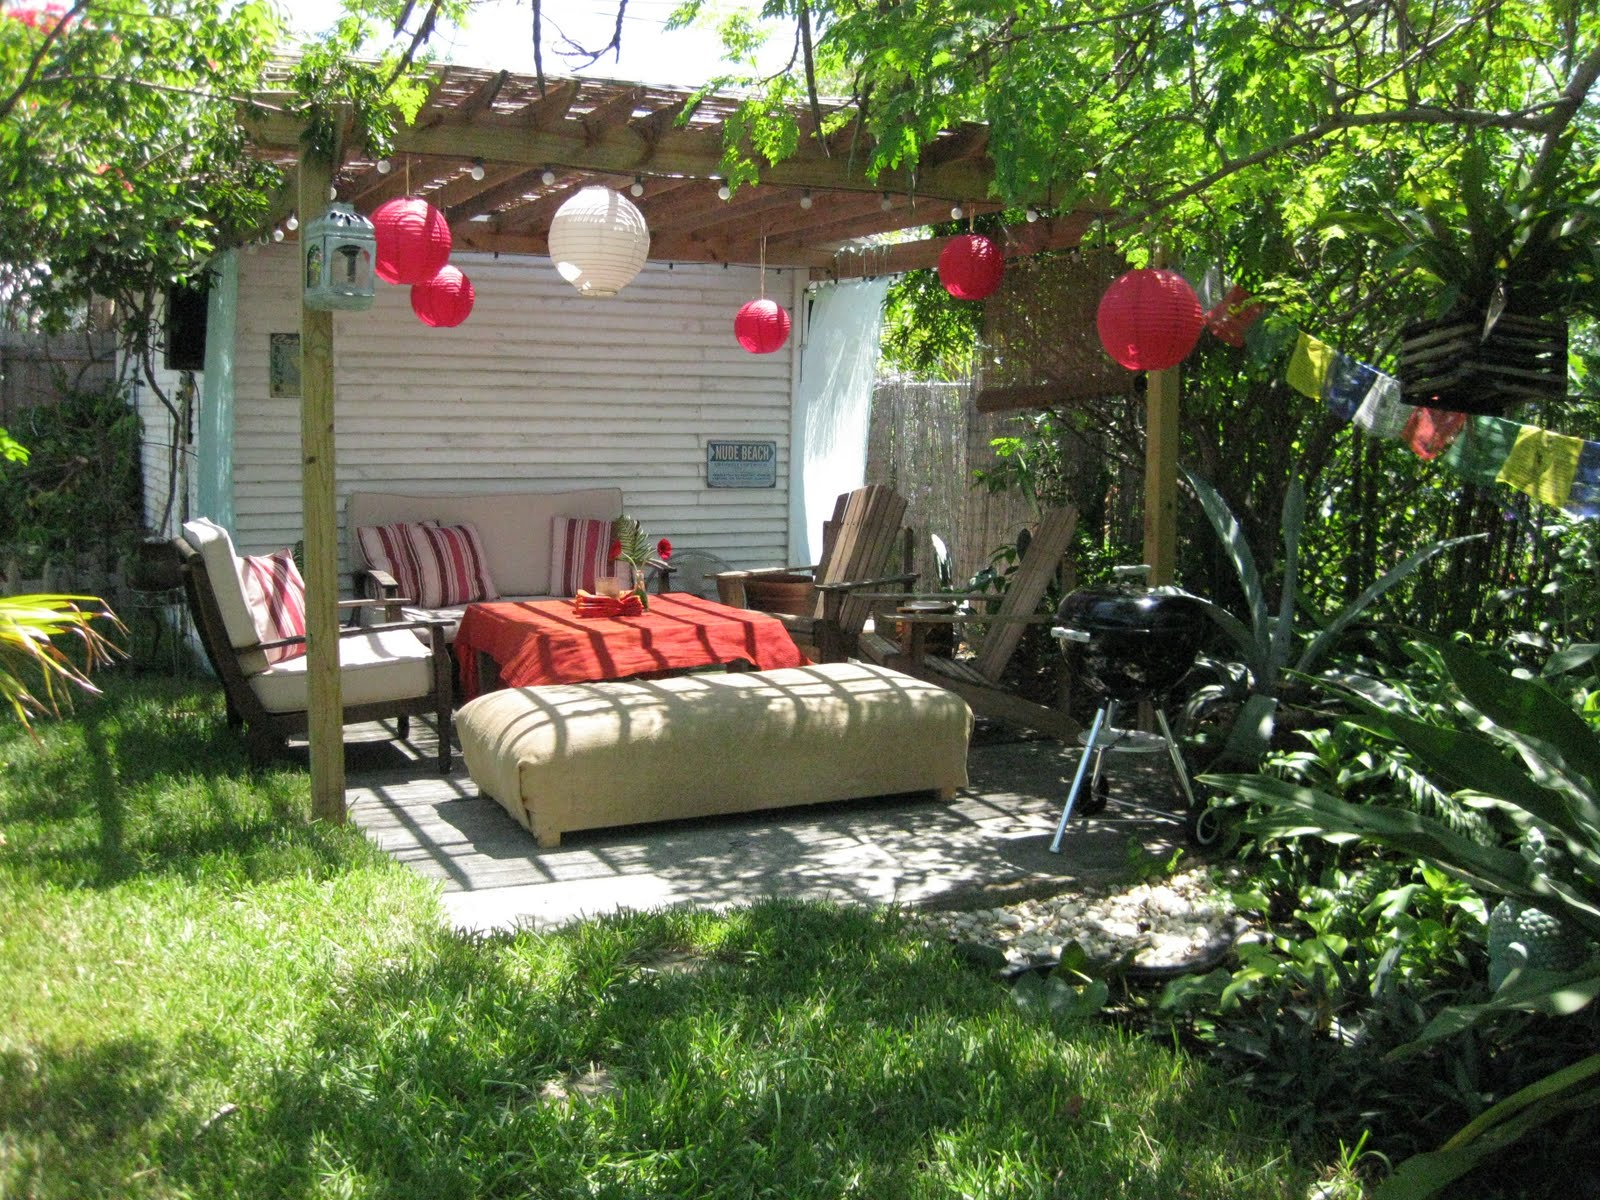 Backyard Barbeque Decorations Ideas Design Ideas Backyard intended for 11 Some of the Coolest Ideas How to Craft Backyard Bbq Ideas Decorations